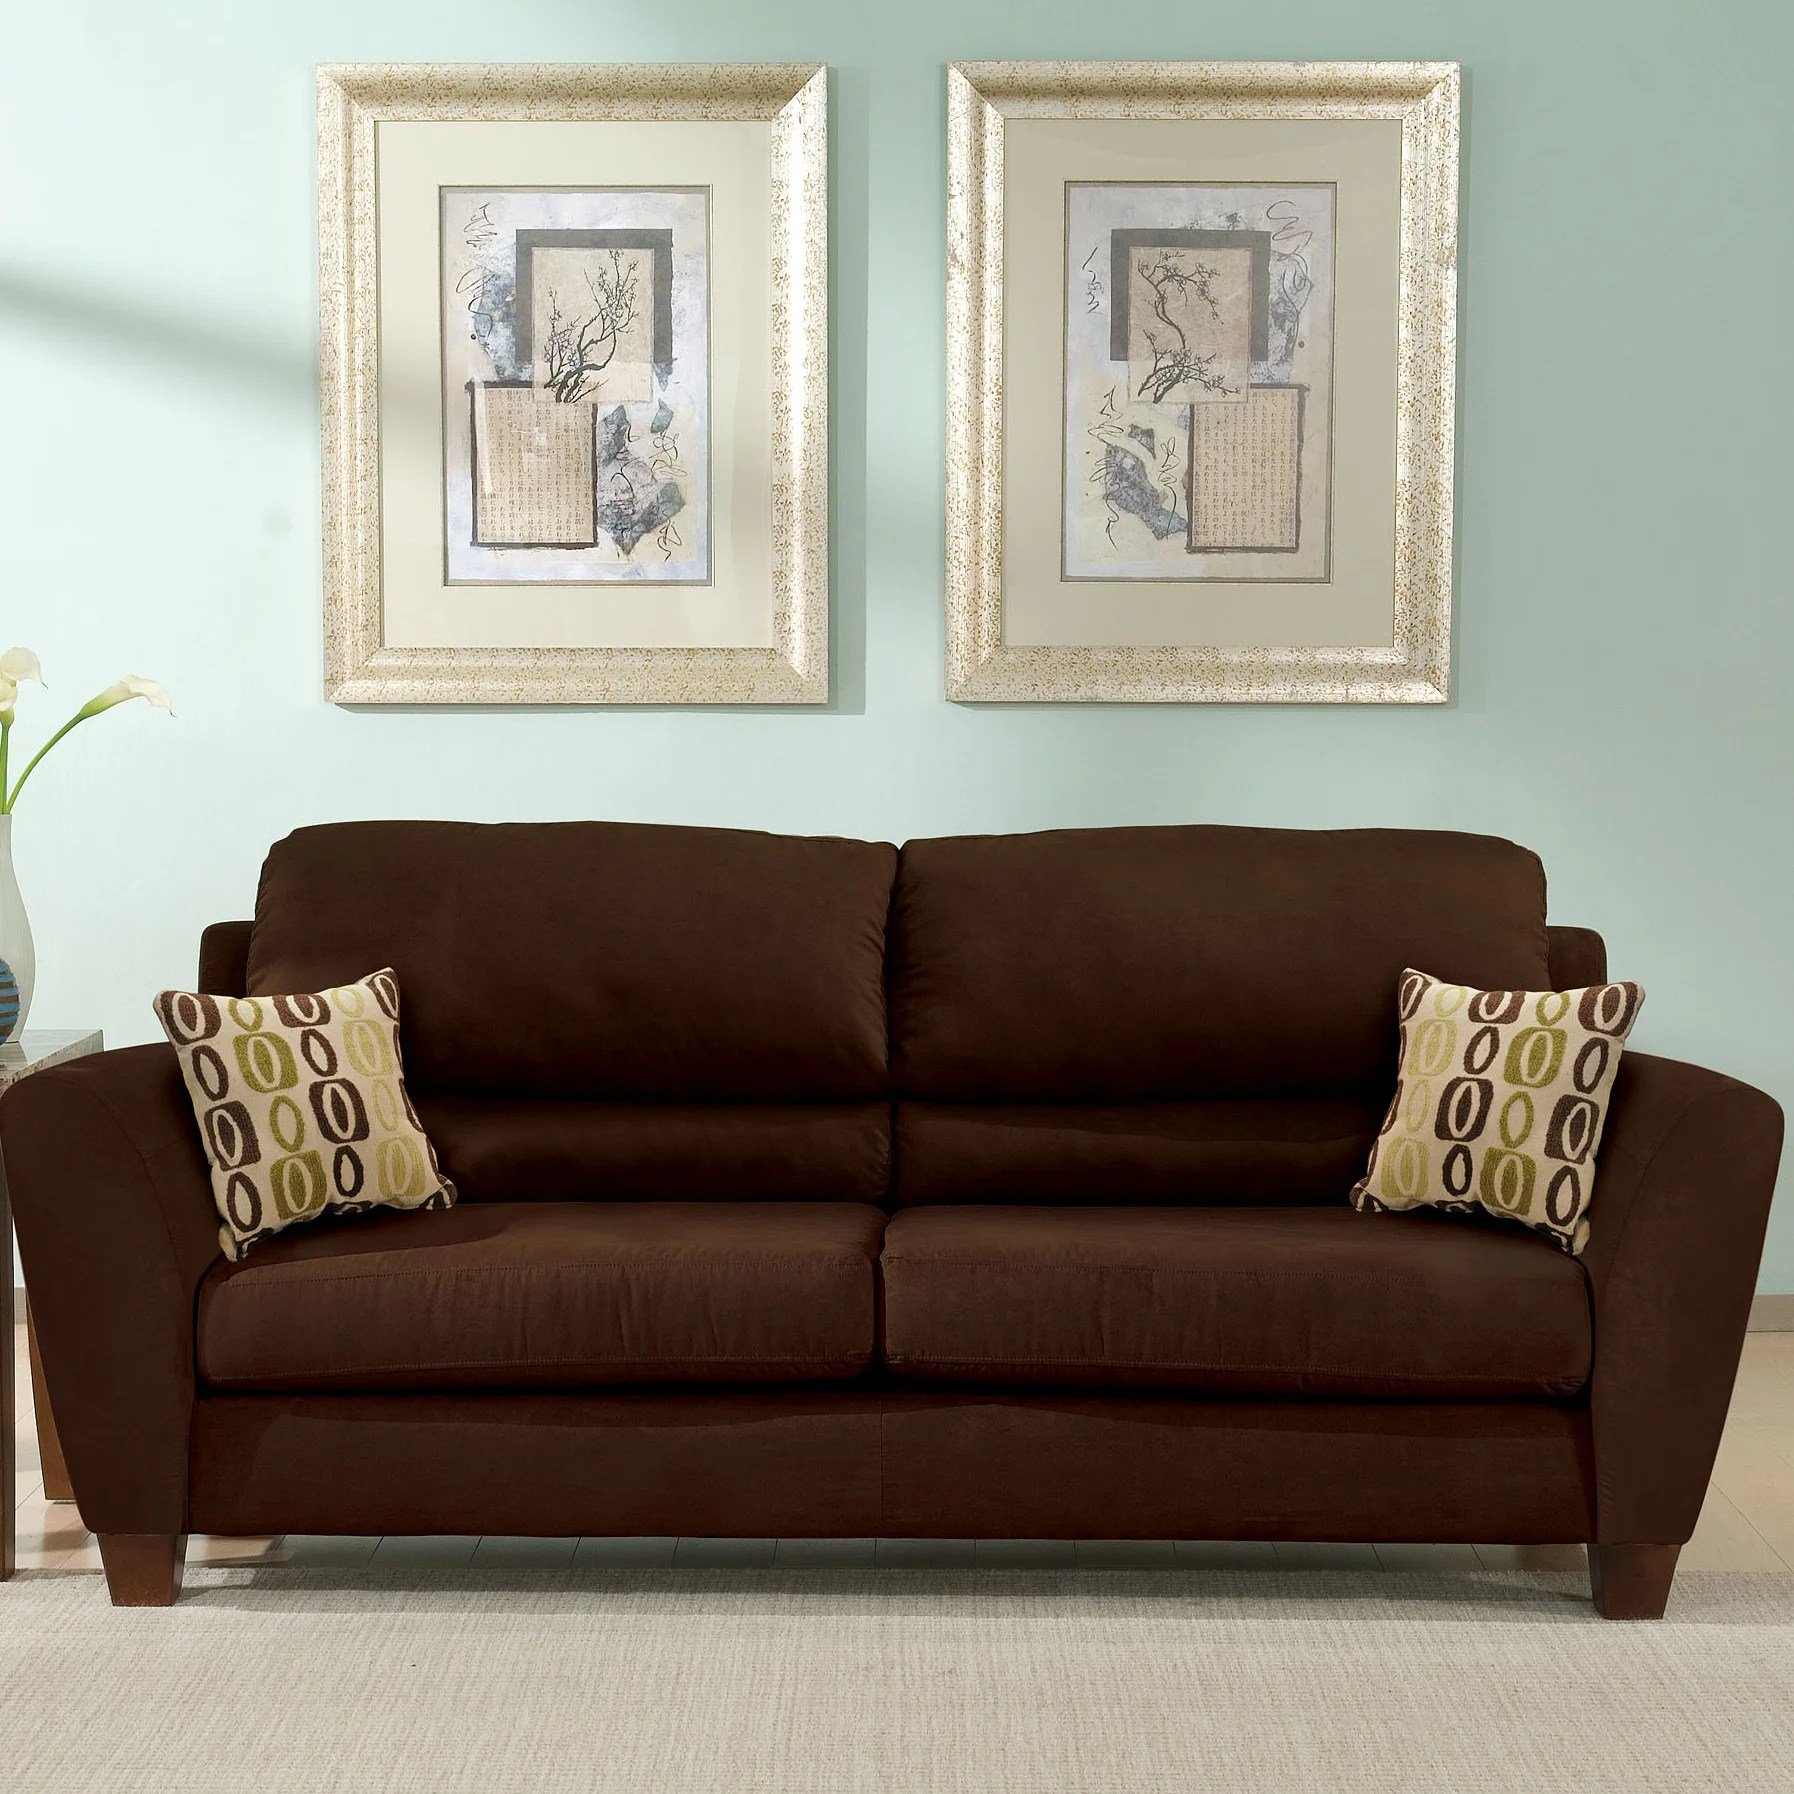 build your own sofa online suede leather cleaning design uk